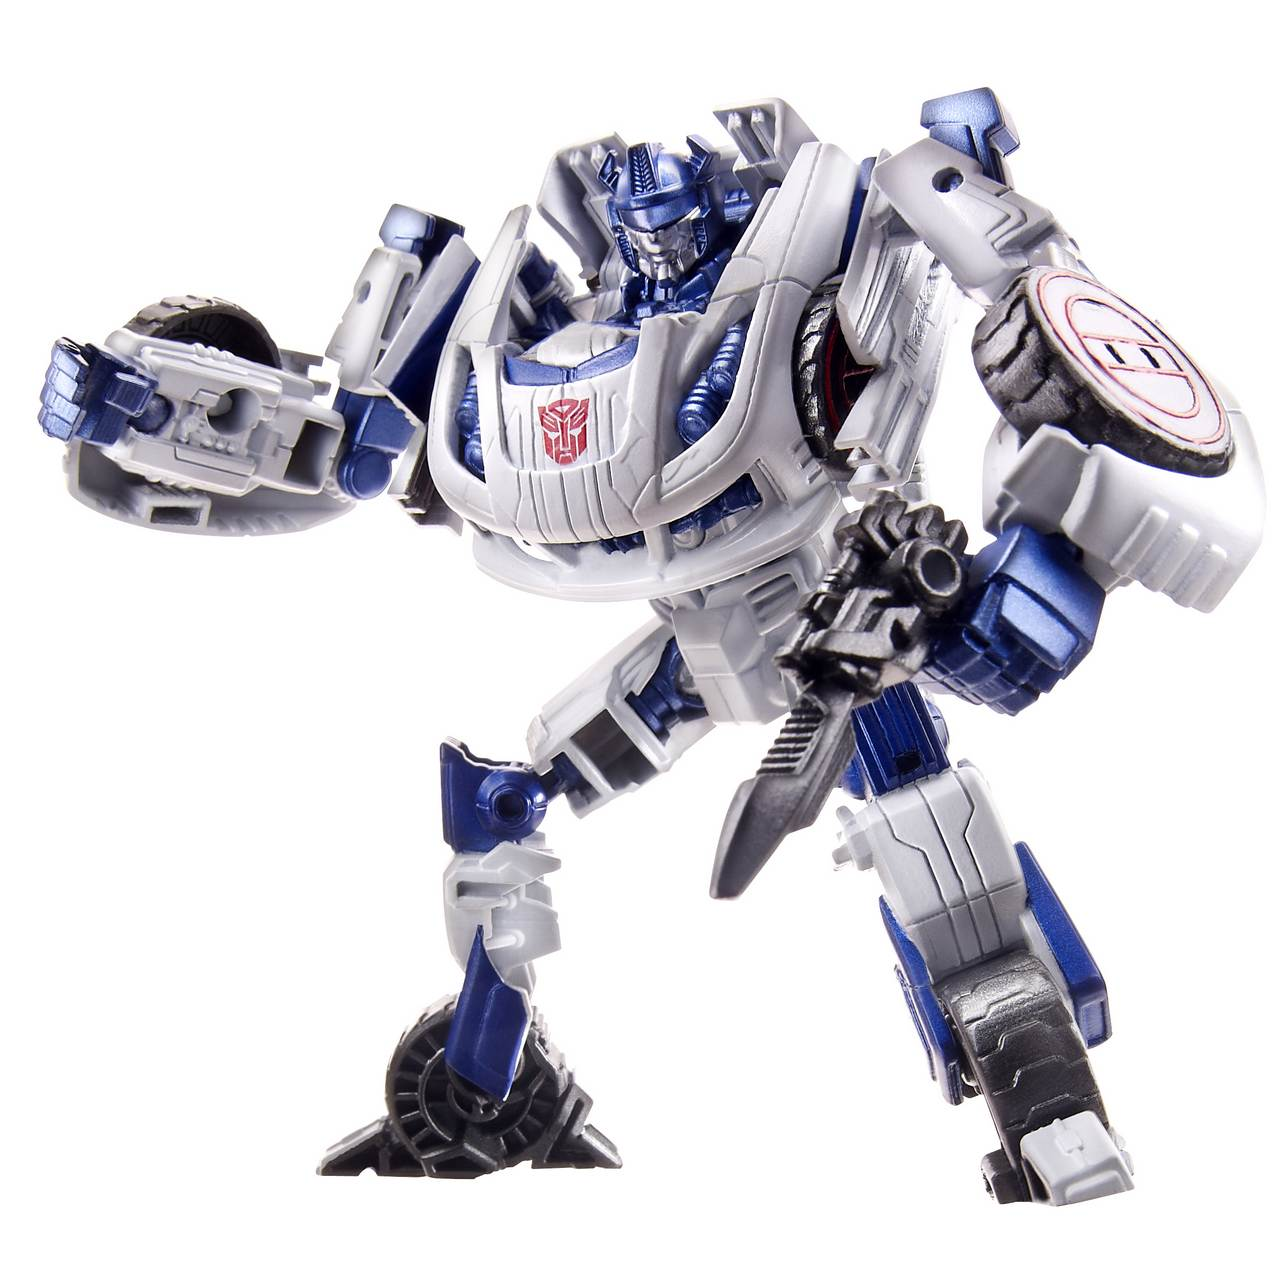 A0170 Transformers Generations Fall of Cybertron Toys Official Images 0m0mBbqL